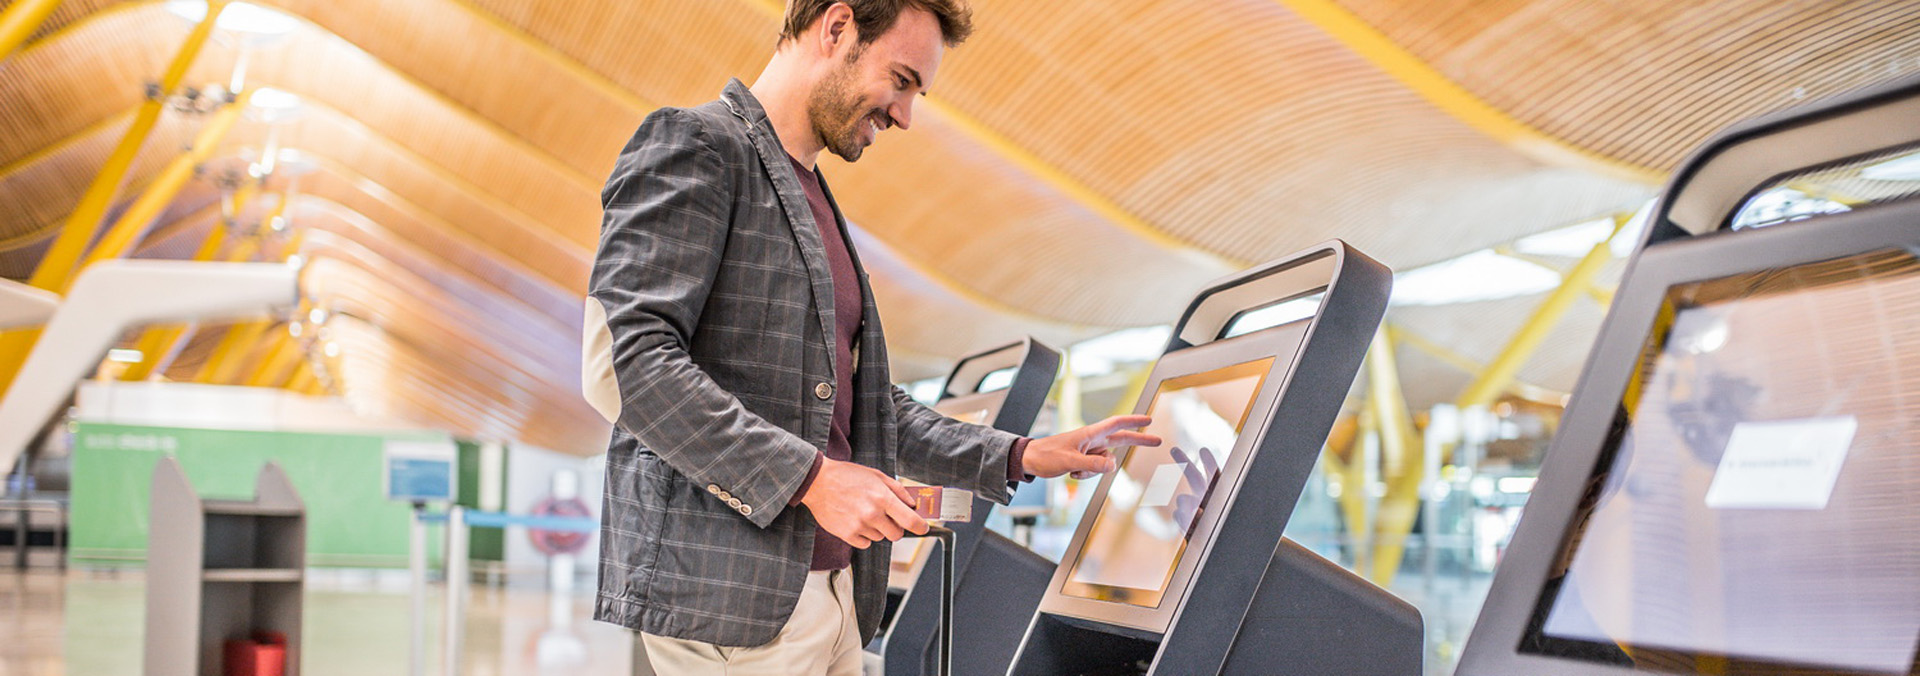 Vending Machines and Remote Kiosks